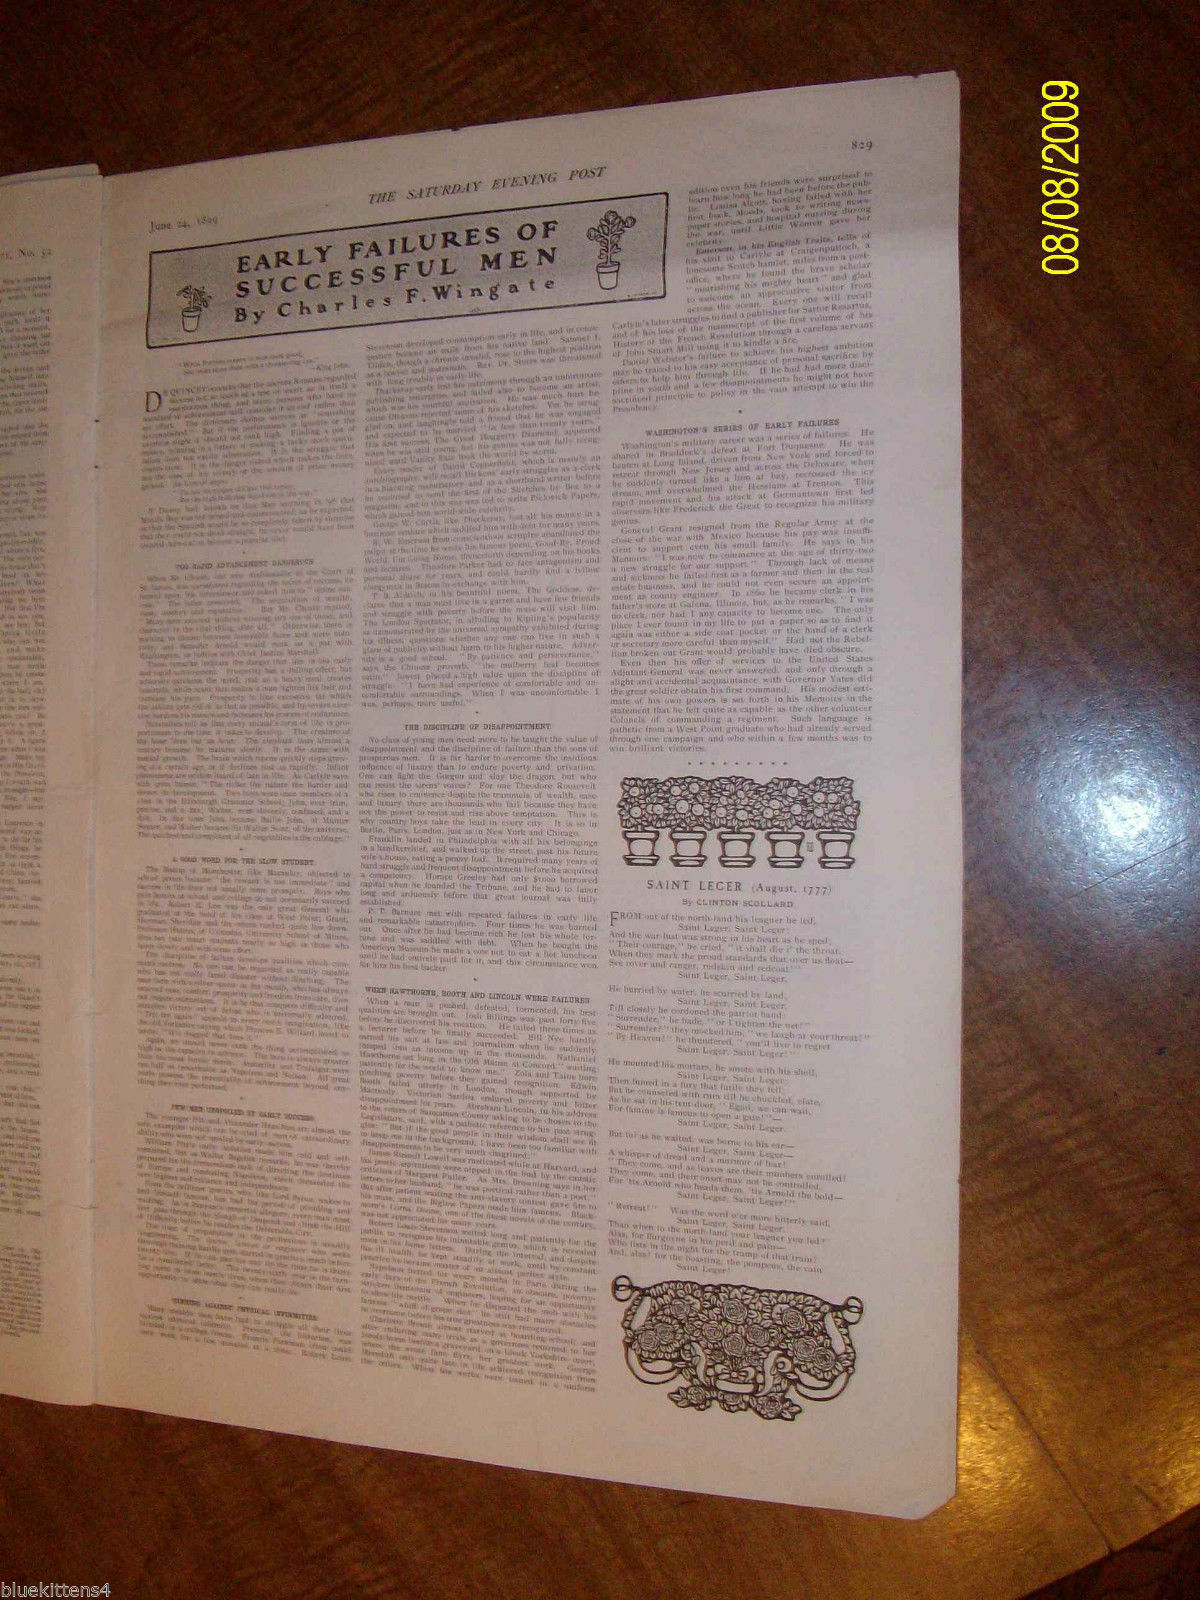 SATURDAY EVENING POST JUNE 24 , 1899 Excellent Illustrations Historical Ads Art